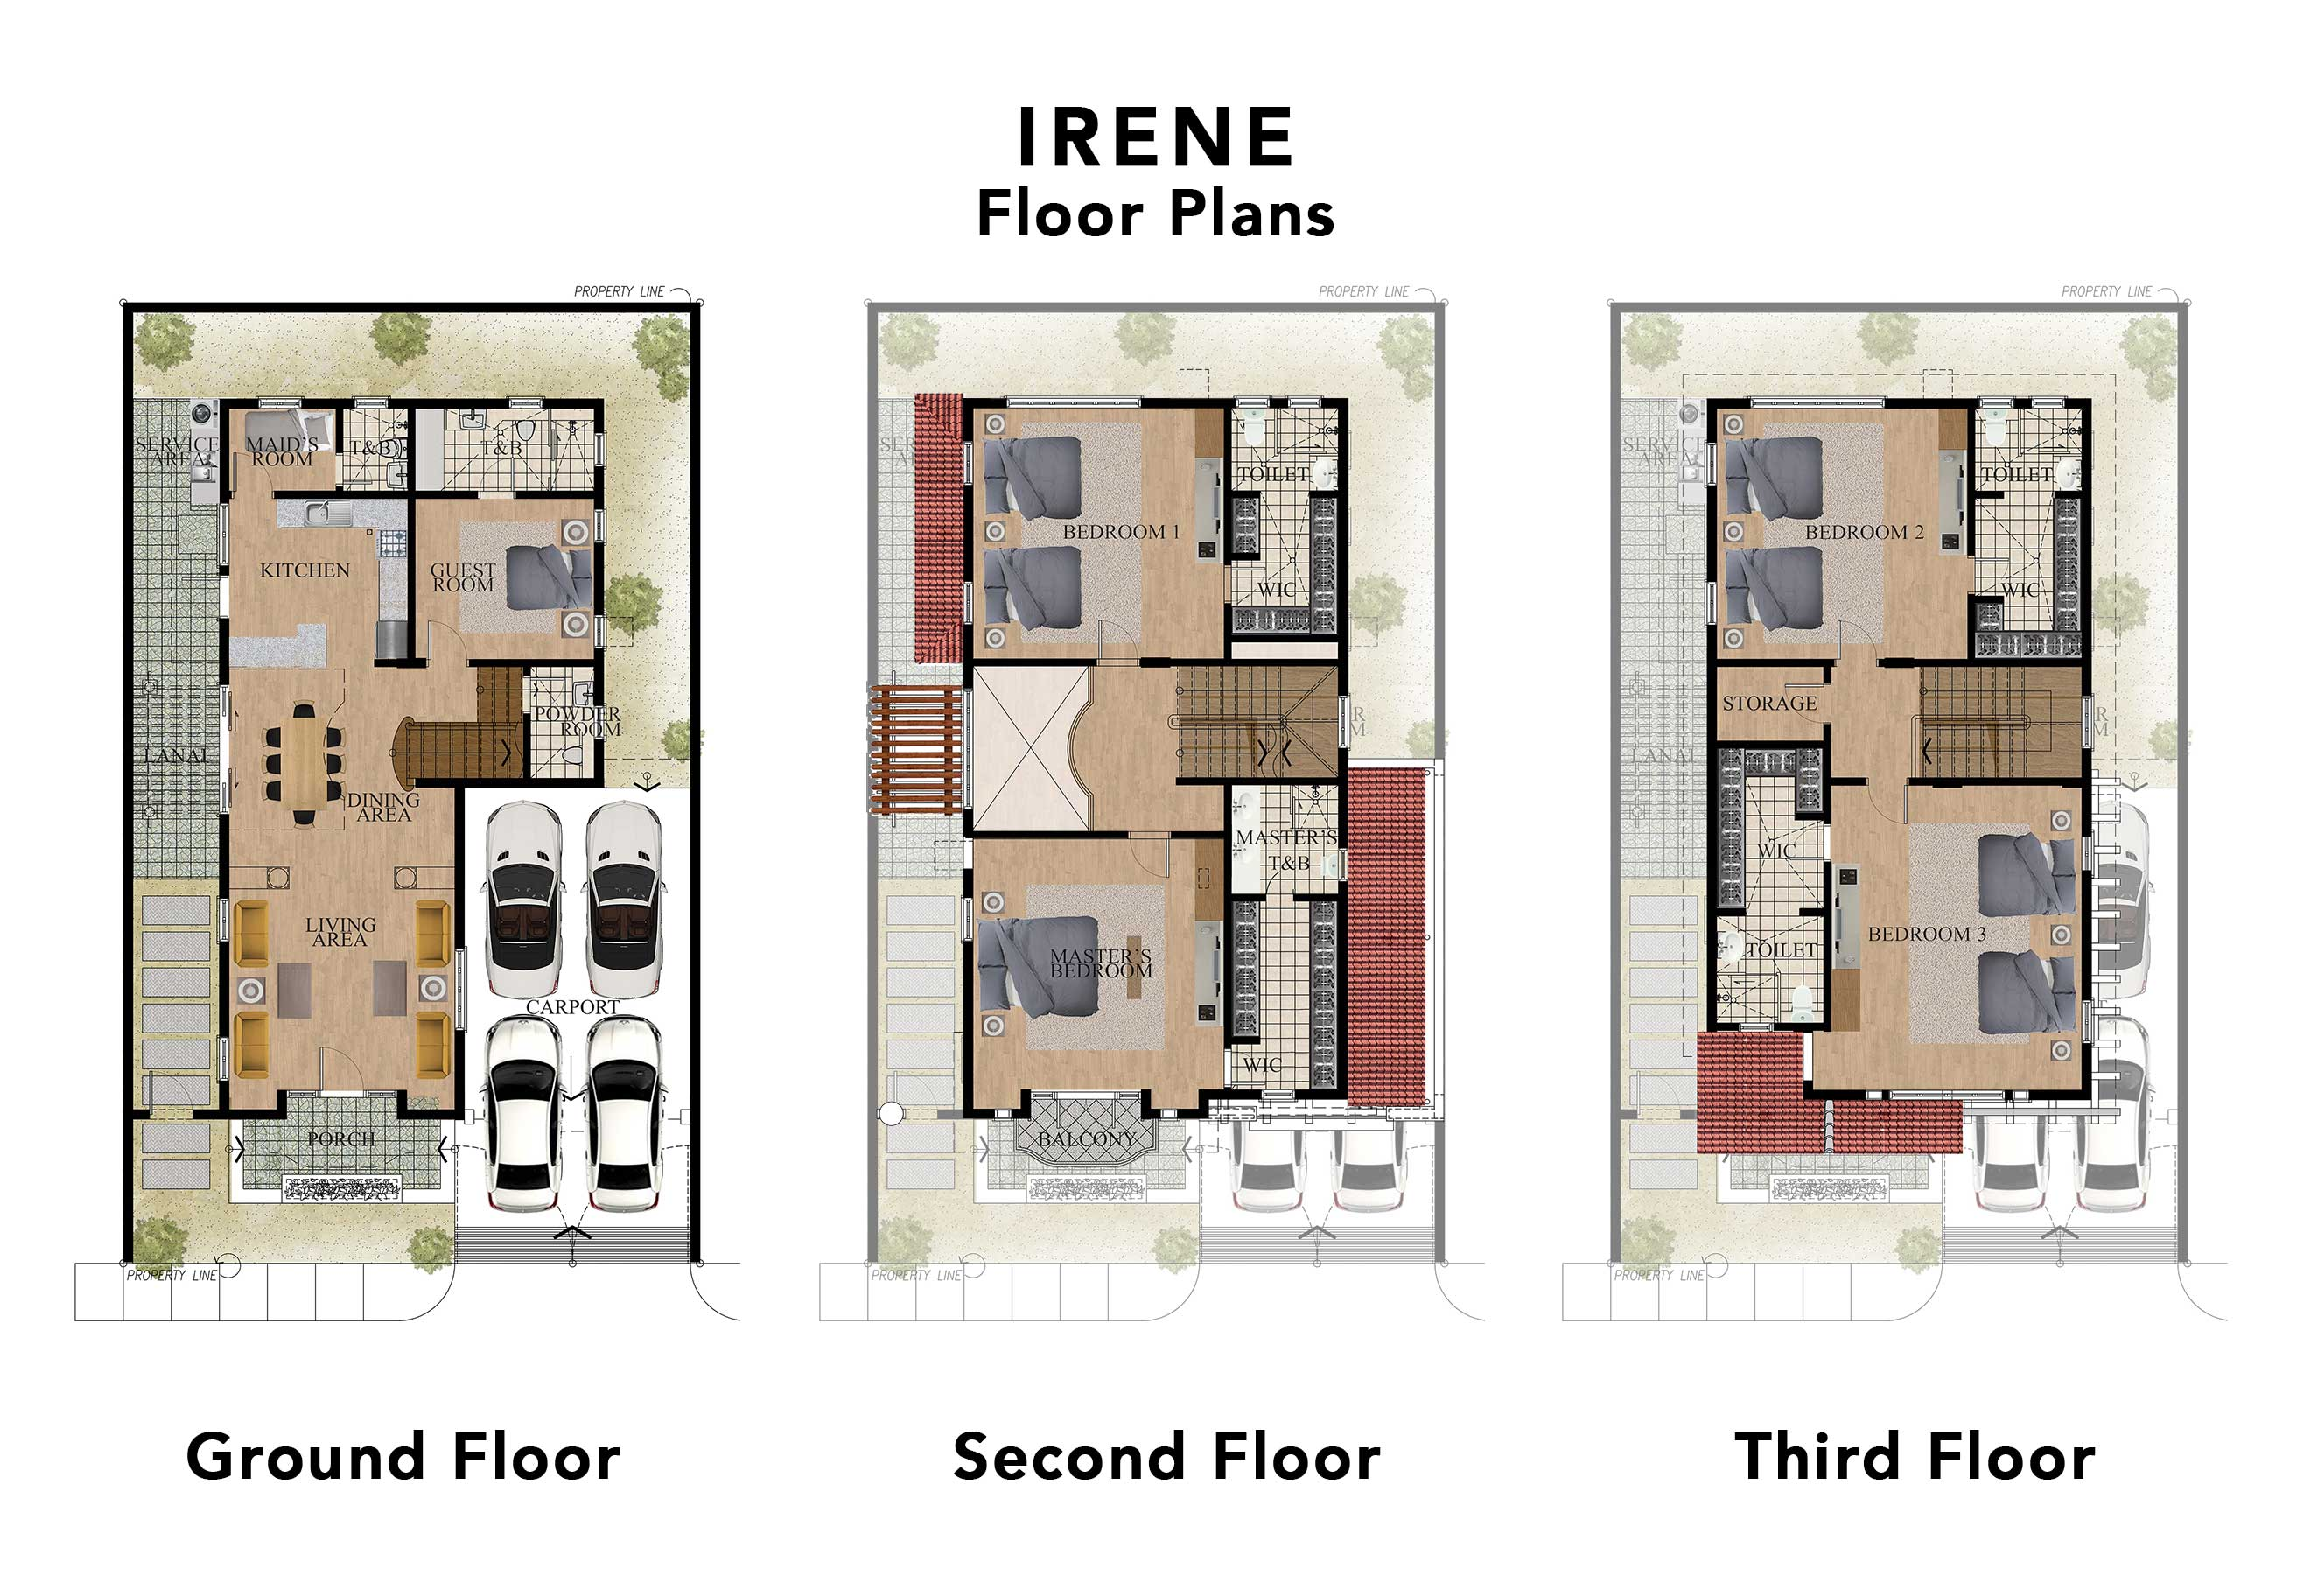 Irene (Mirrored) Floor Plans UPDATED 20200818 (saved for web)